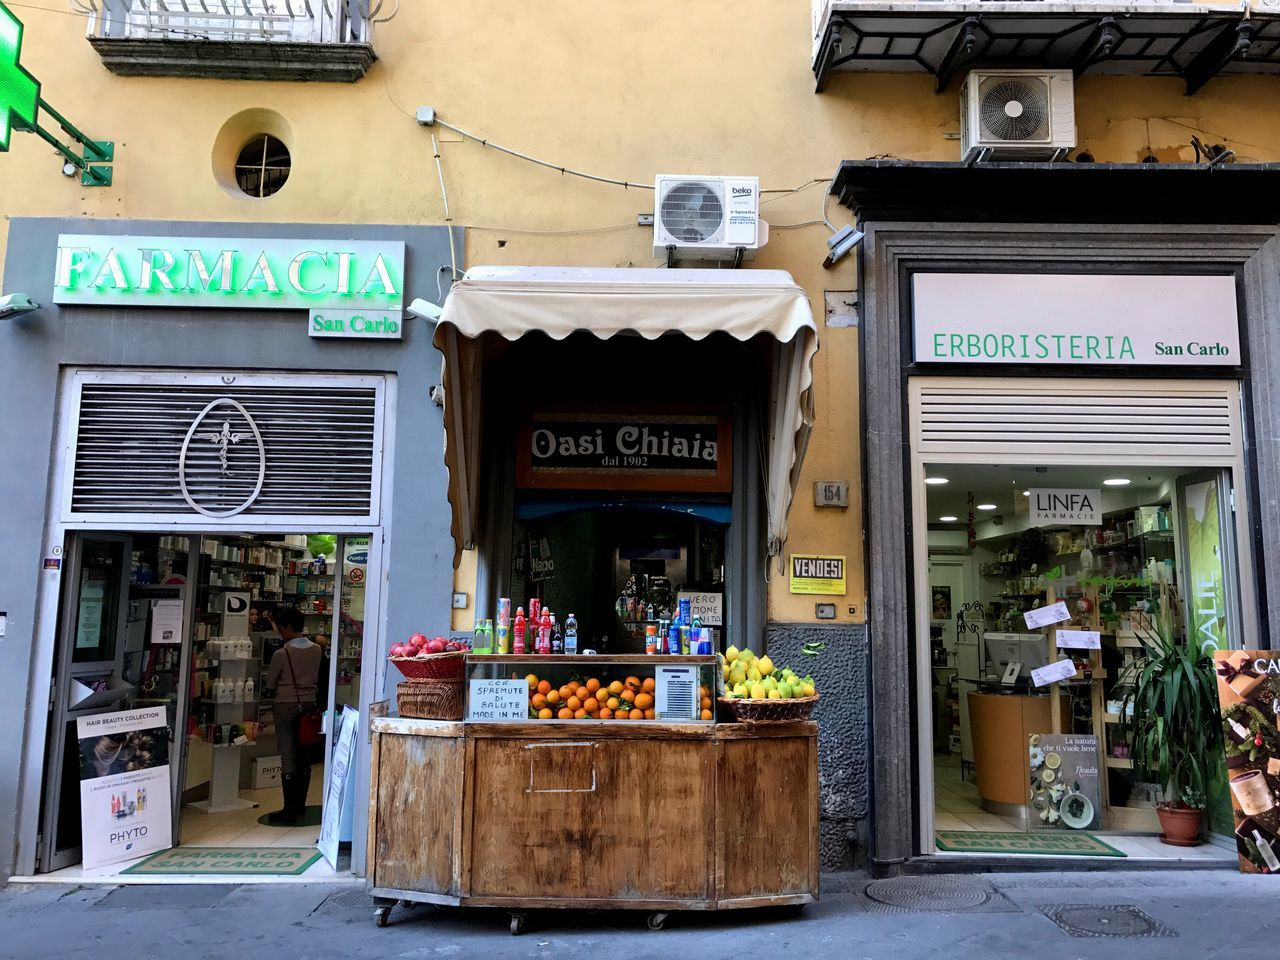 Quale la medicina migliore? Store Small Business Building Exterior Retail  Outdoors Restaurant City Food And Drink Food Built Structure Variation Bakery Store Sign Day Architecture Food And Drink Industry Sweet Food No People Freshness Napoli Napolipix Napoli Street Napoli Italy